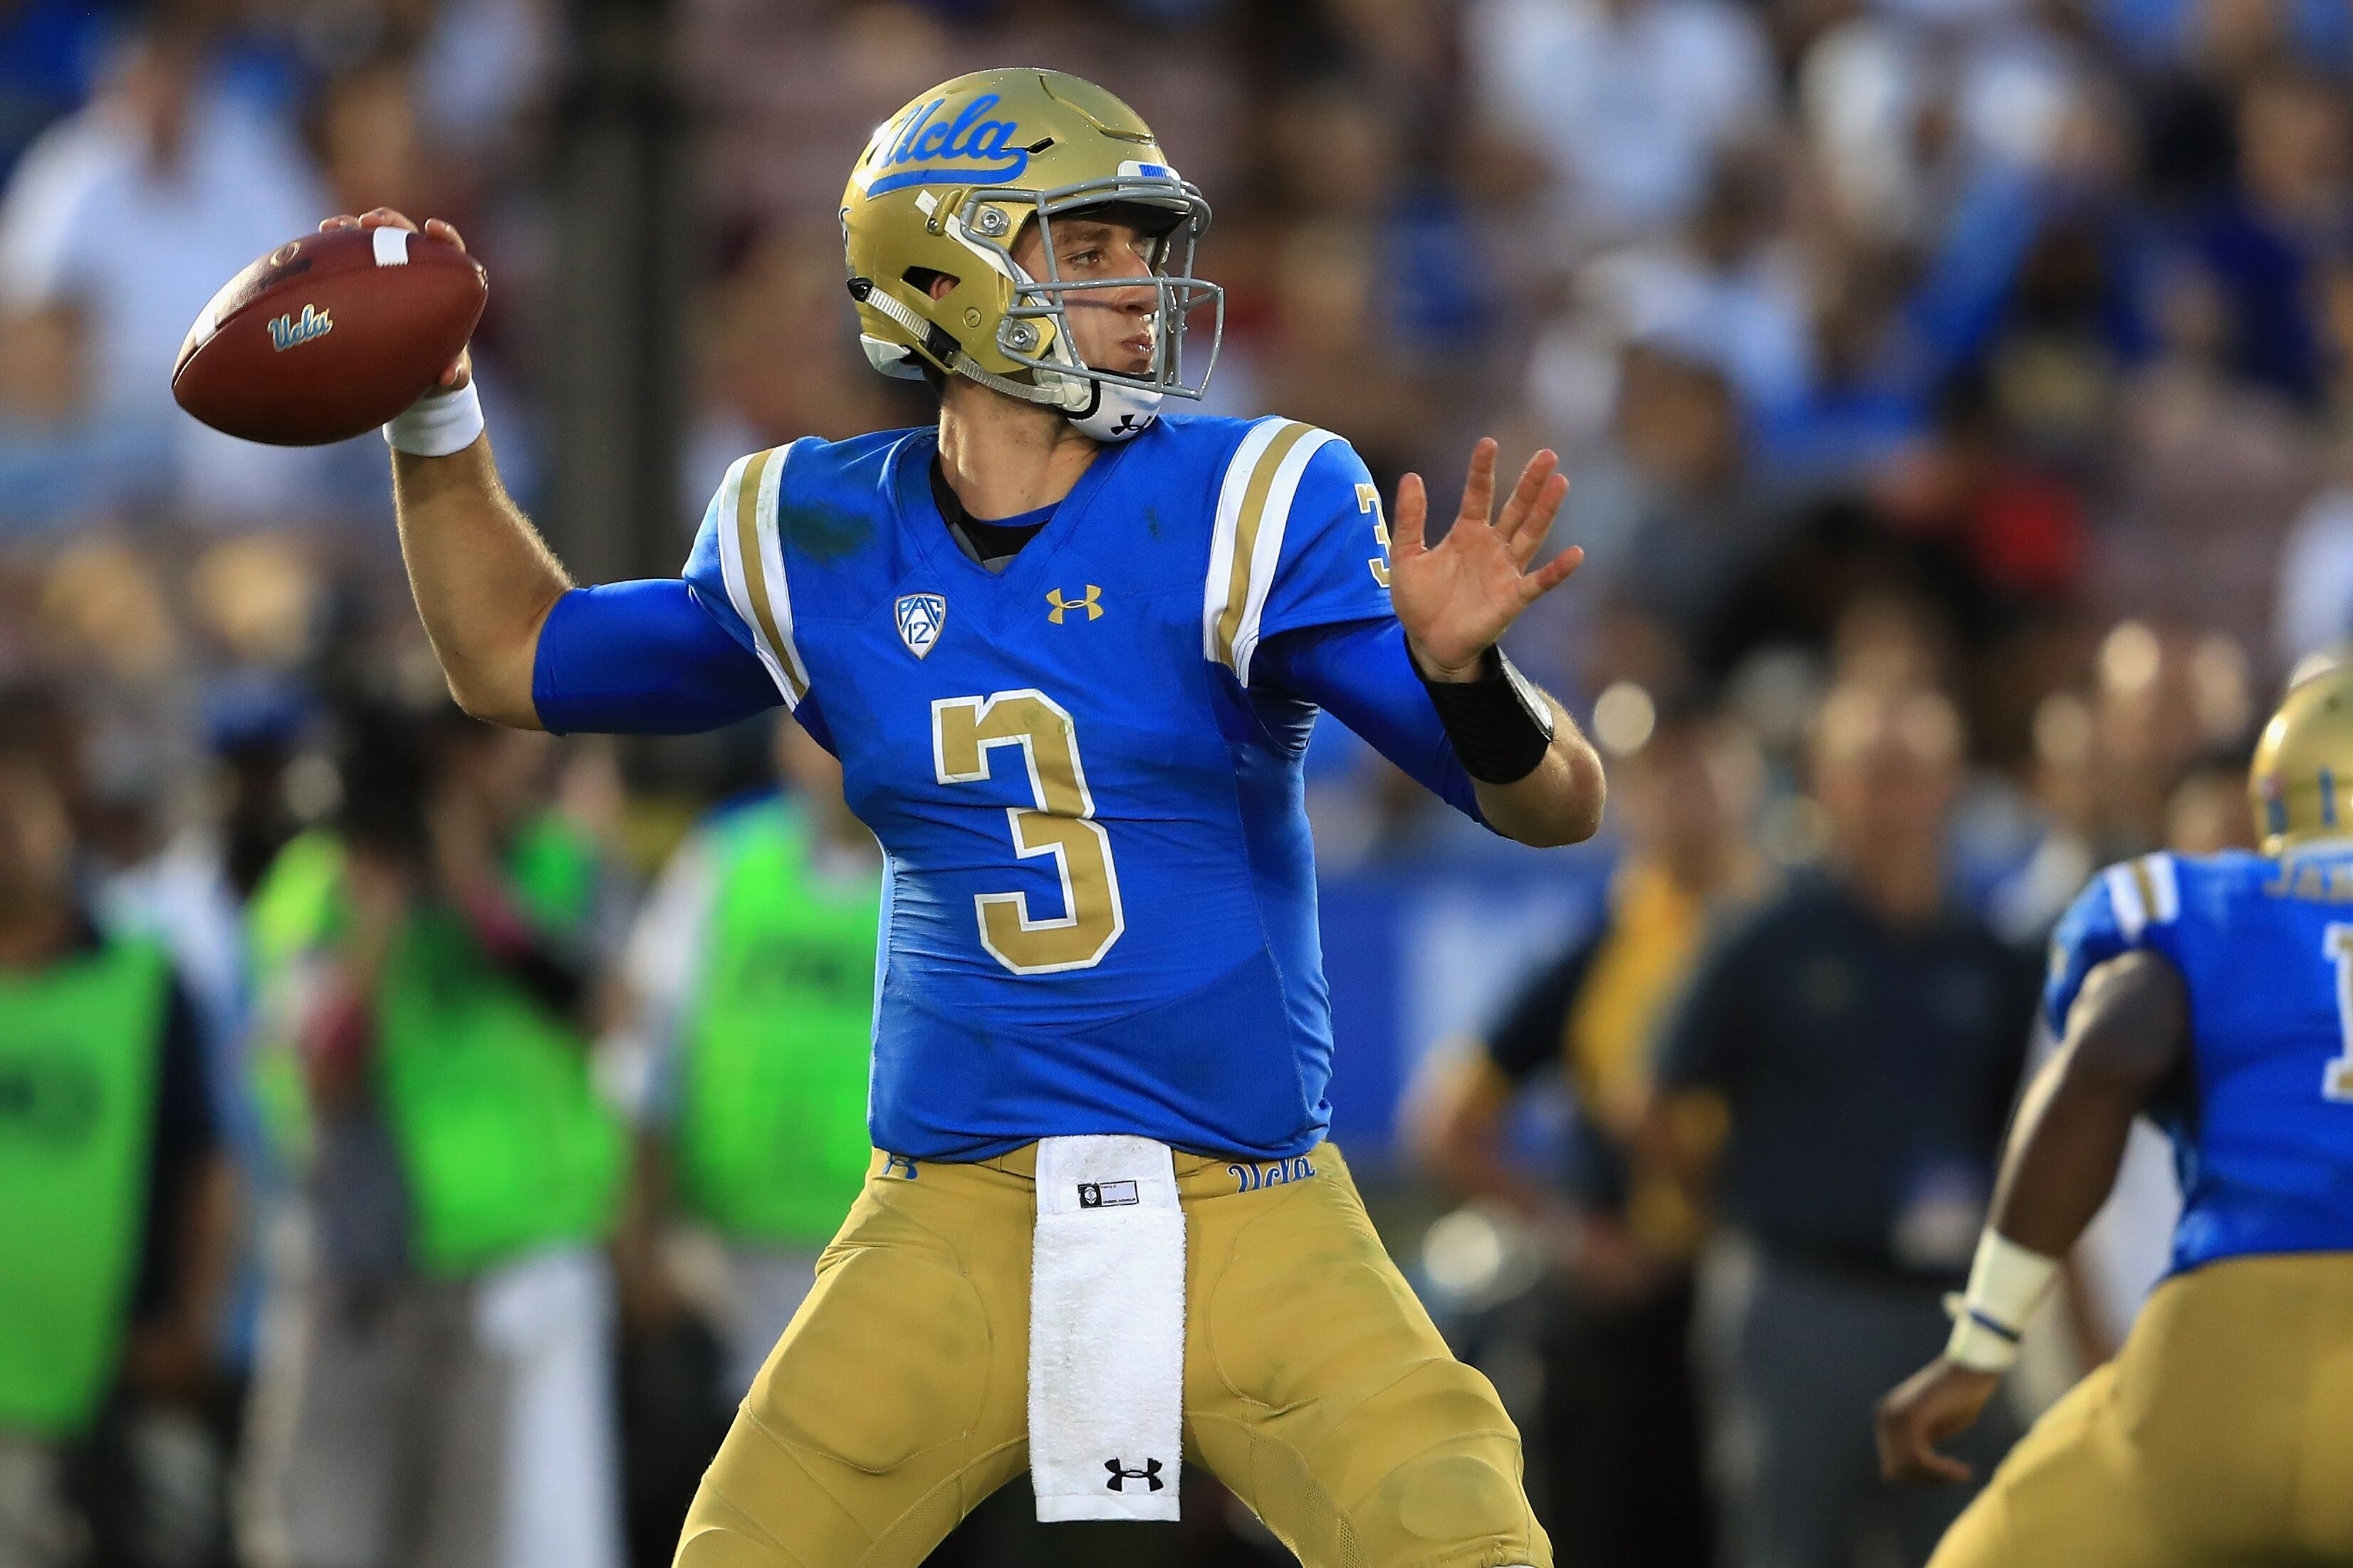 Bowl Game Schedule 2017 >> Know Your Opponent: UCLA Football vs. Memphis Tigers